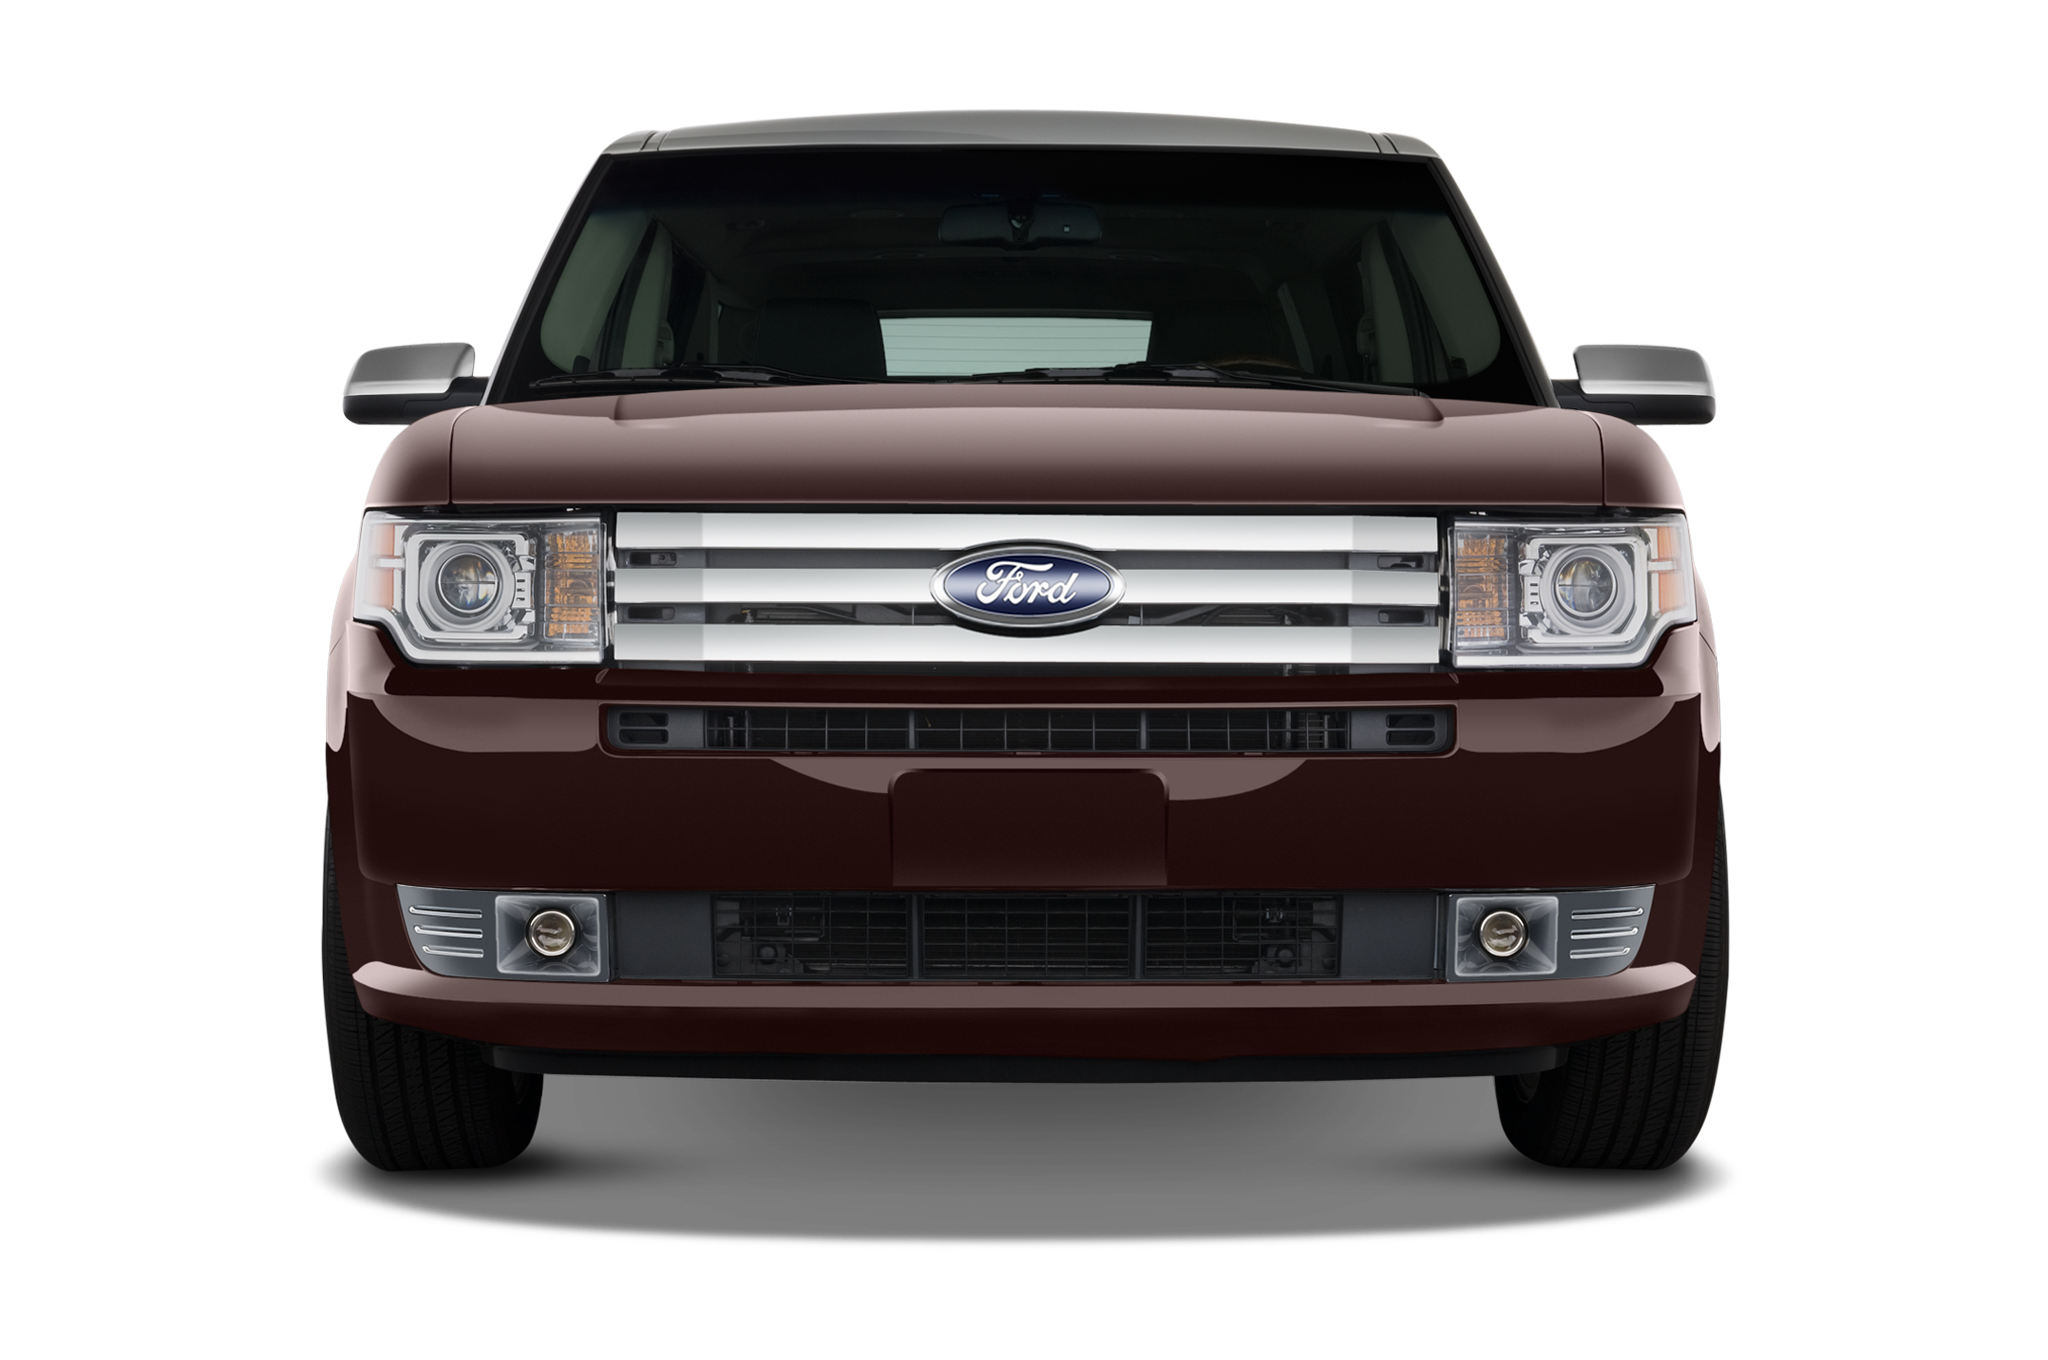 Ford Flex Diagram Schematic Diagrams 2010 Wiring 2011 Trusted Toad